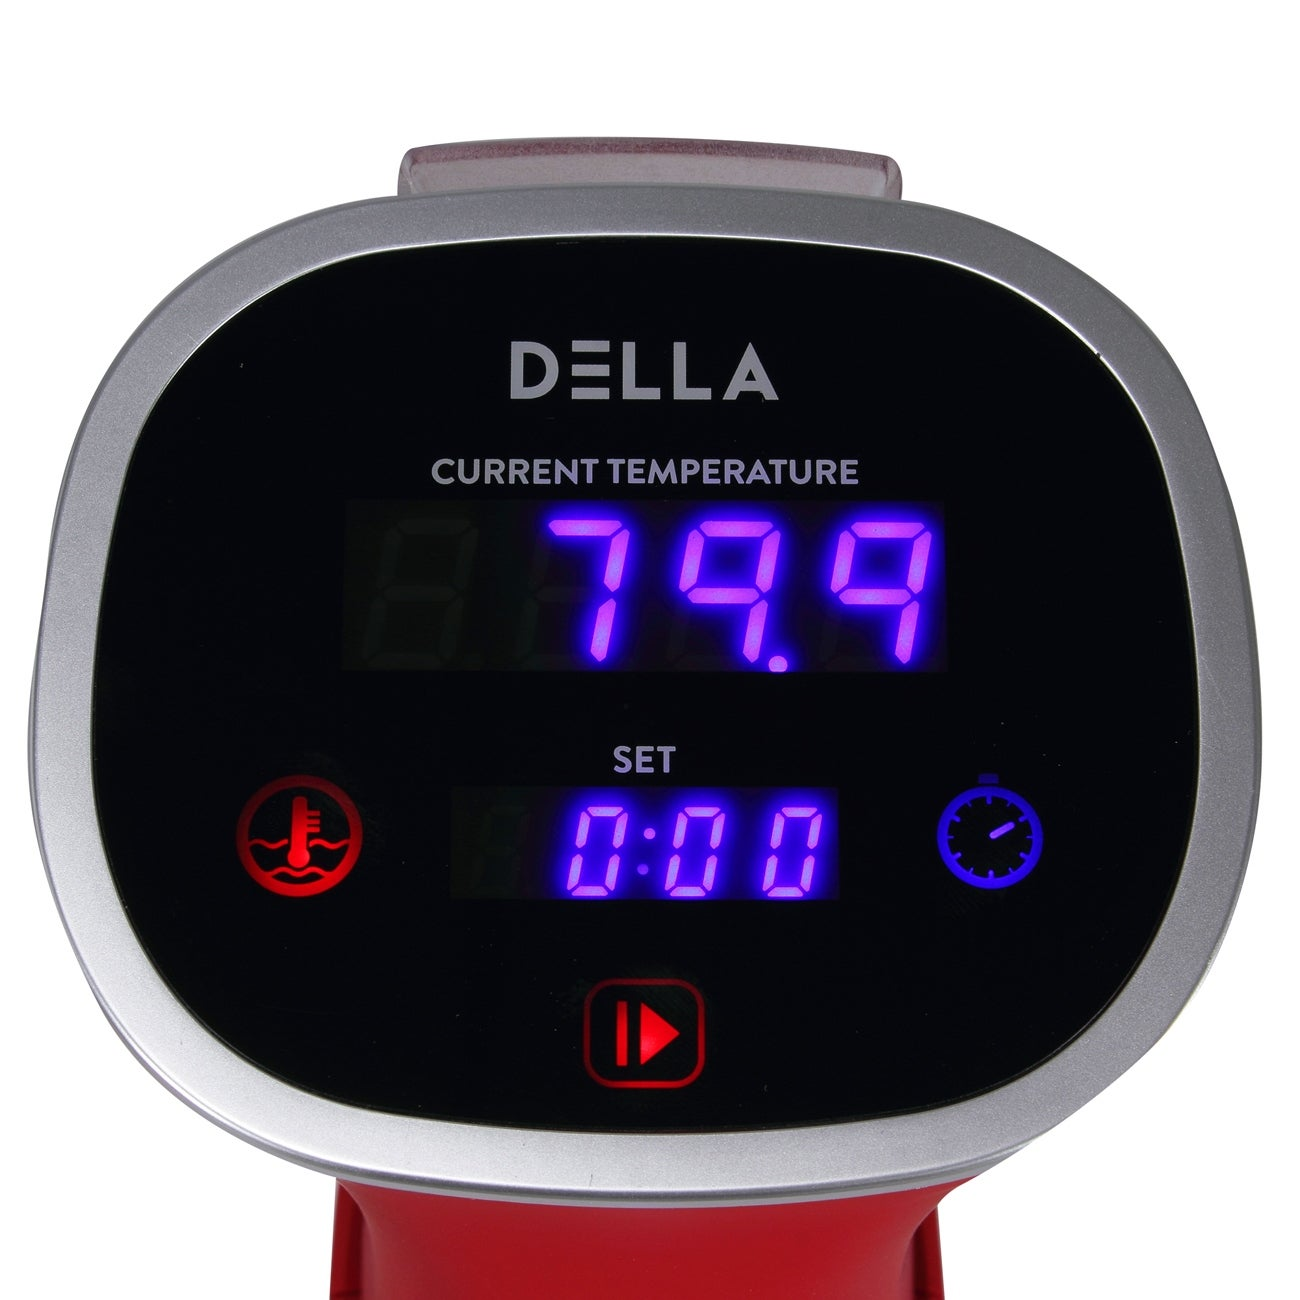 DELLA Sous Vide Power Water Heat Cooker LED Display and Temperature  Control, Red